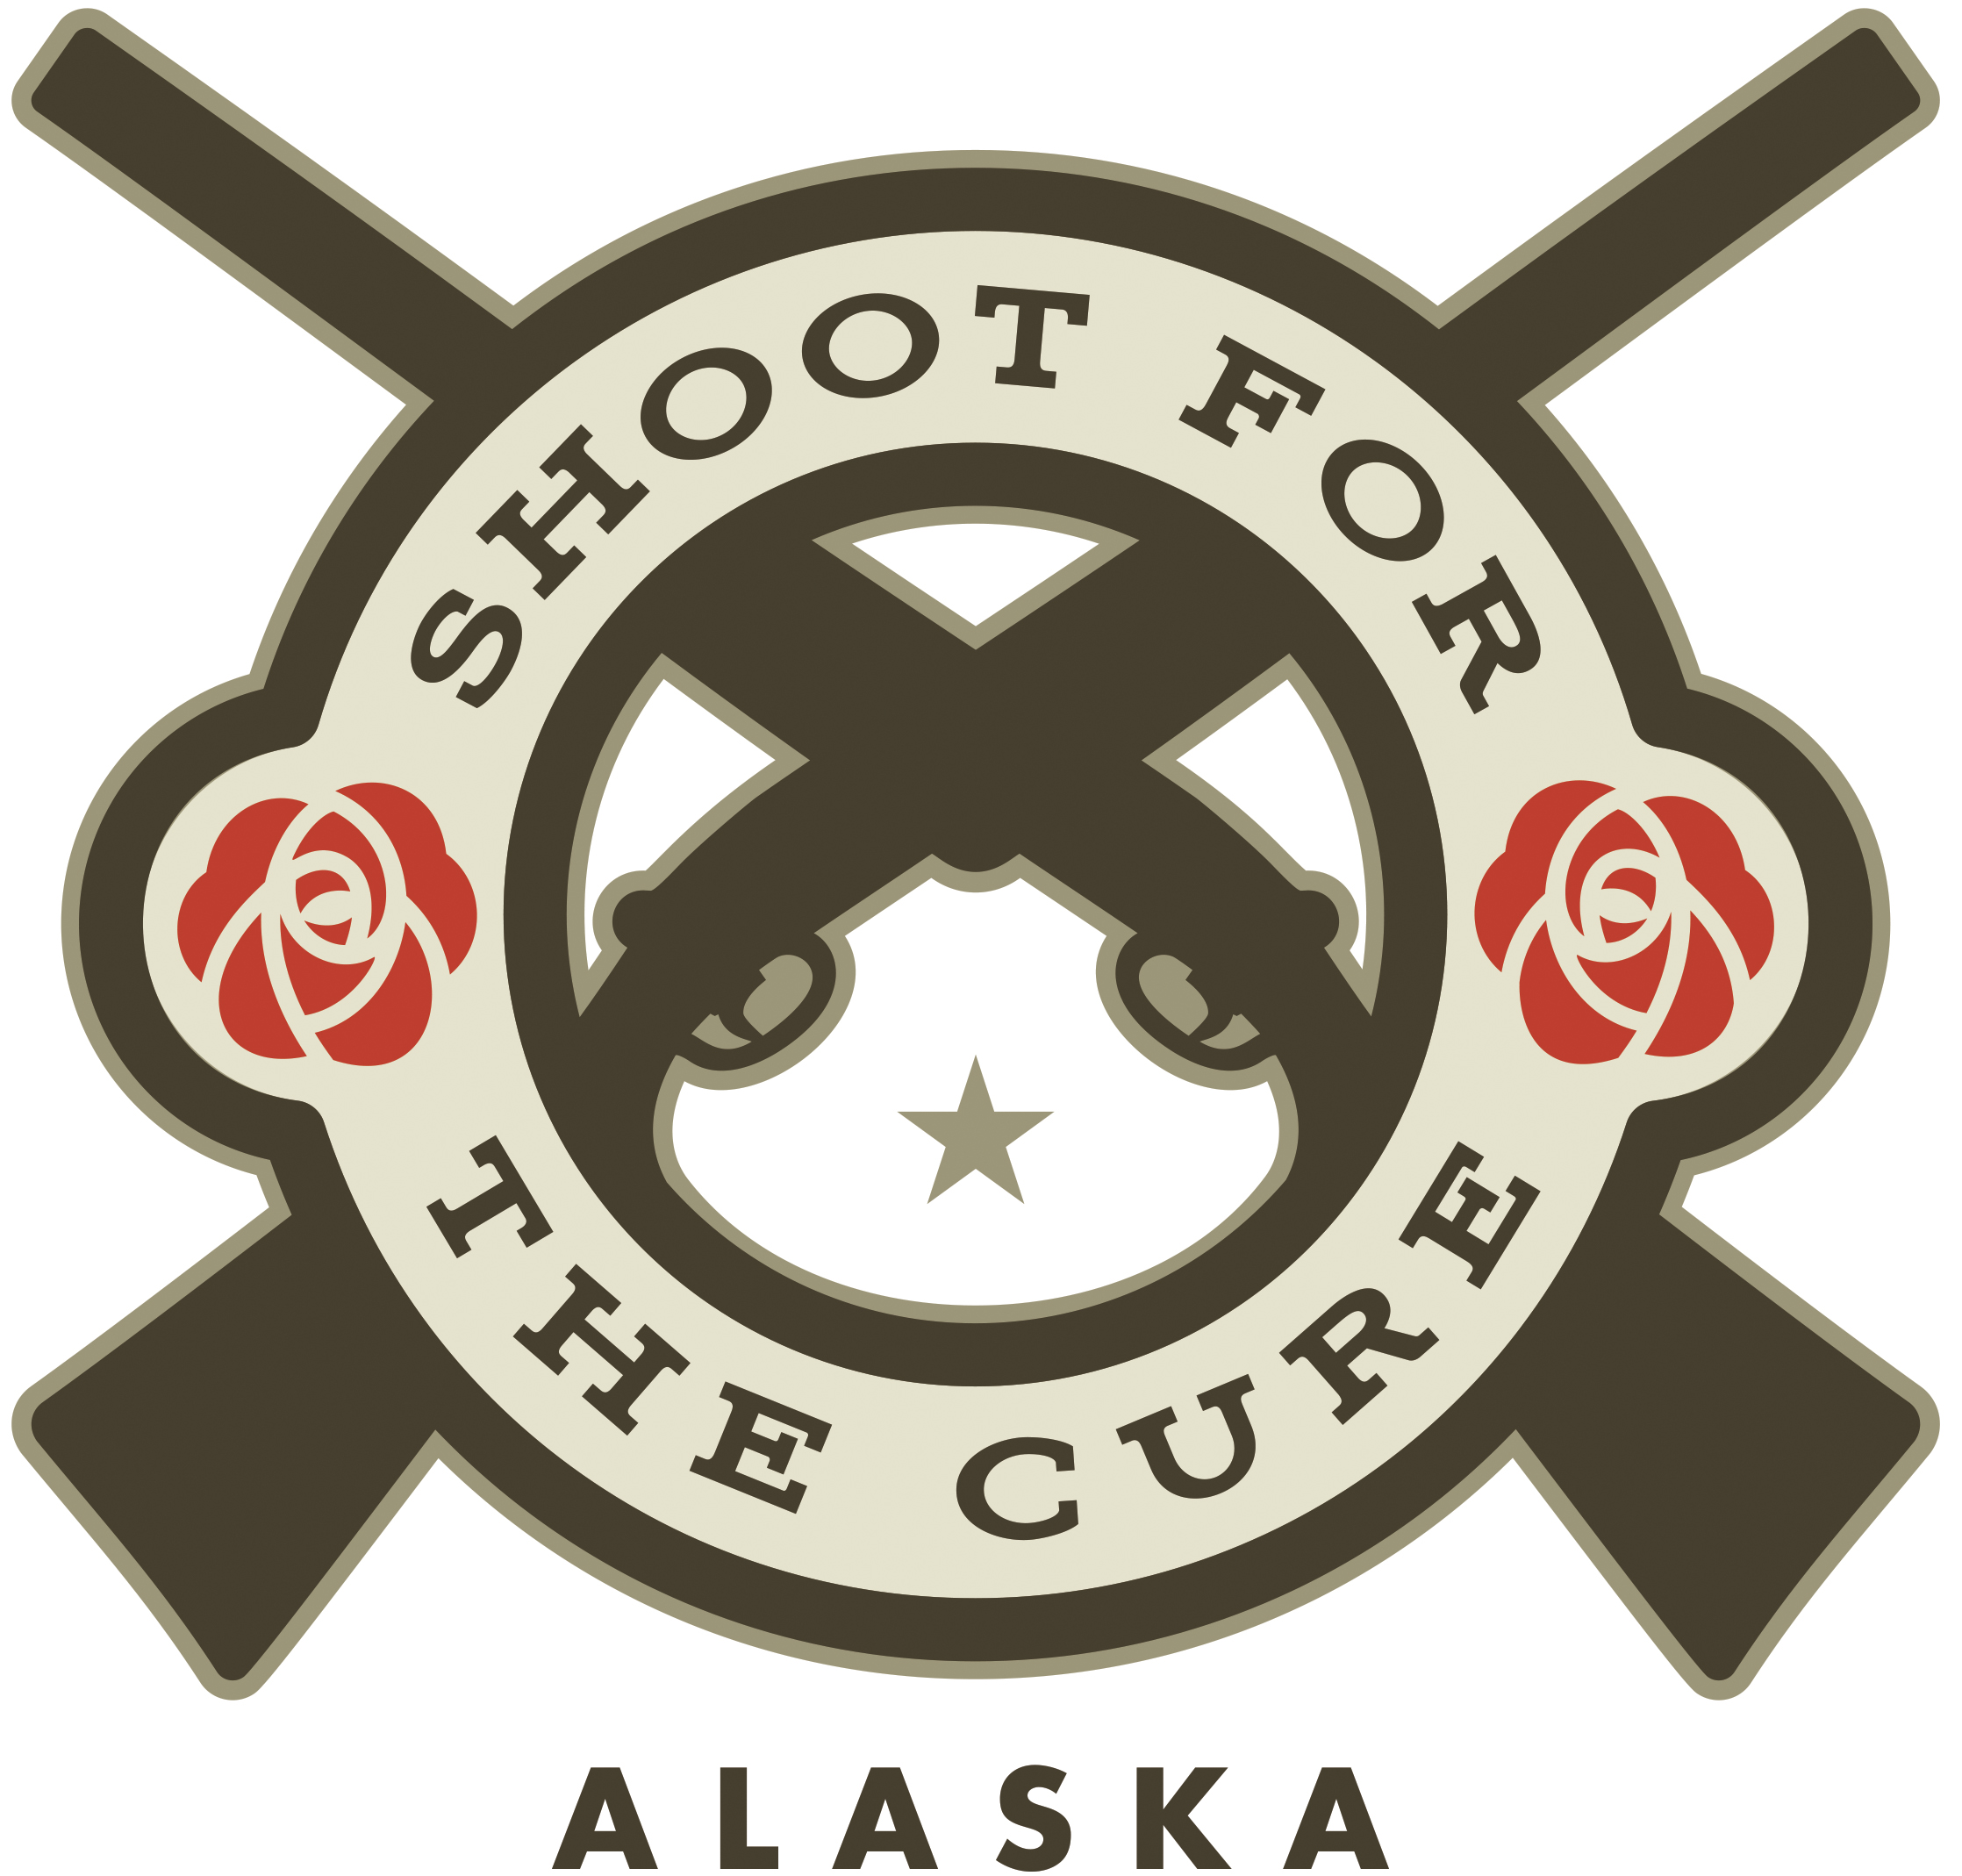 SHOOT FOR THE CURE, Alaska Photo